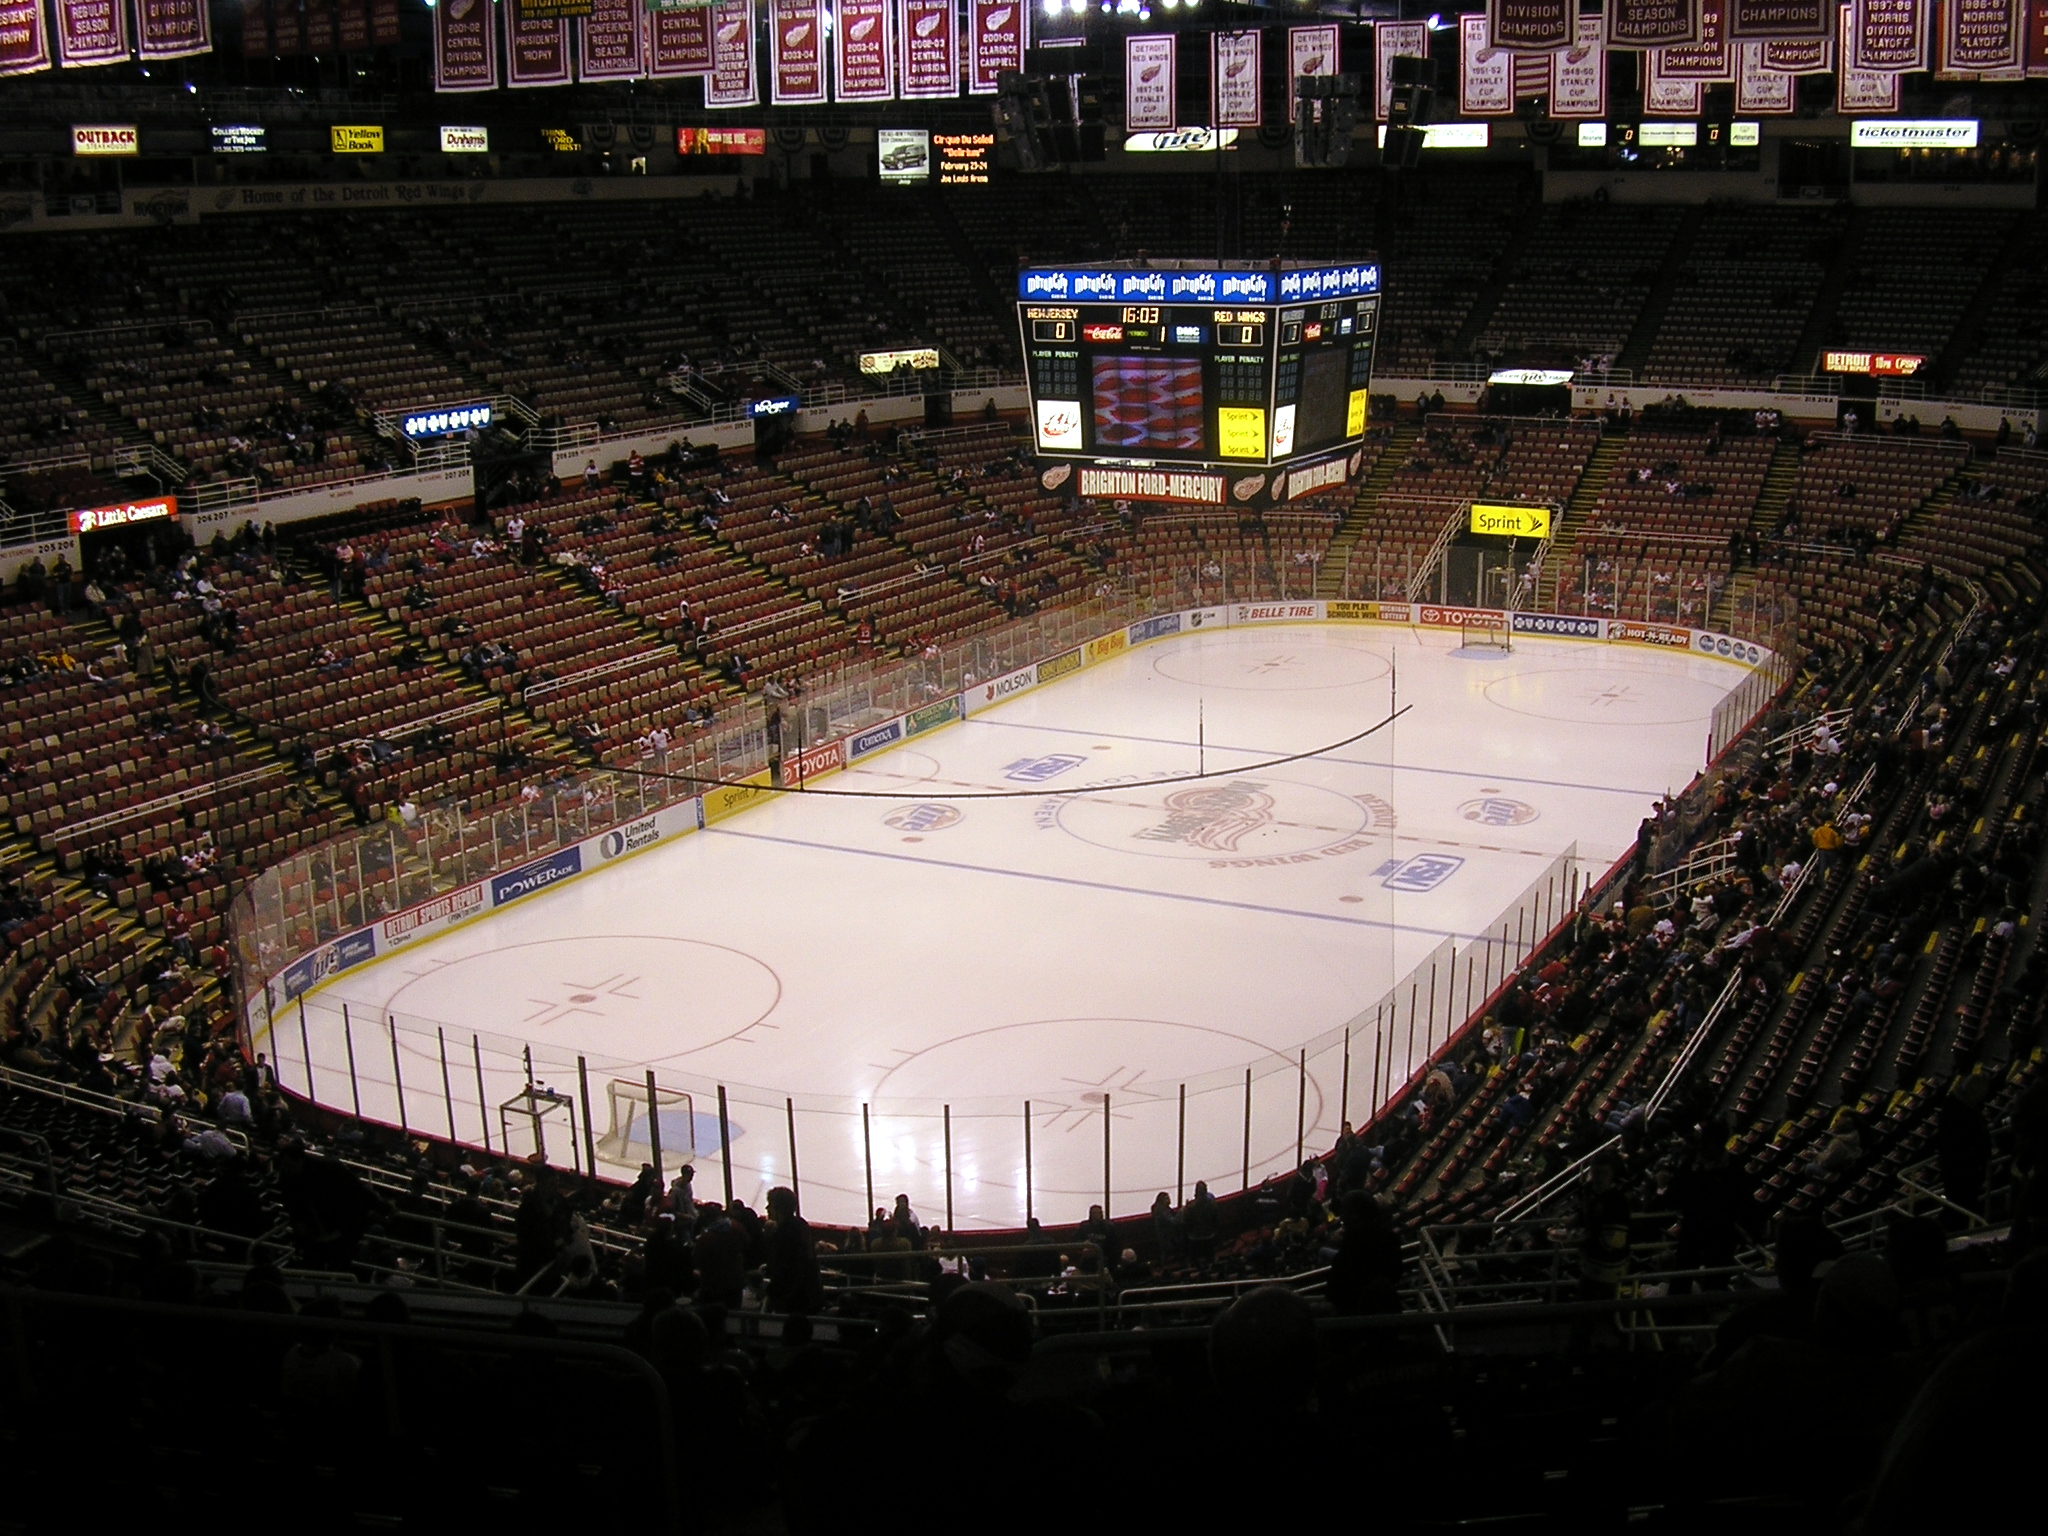 <a href='http://www.ticketsreview.com/joe-louis-arena.html'>Joe Louis Arena tickets</a>